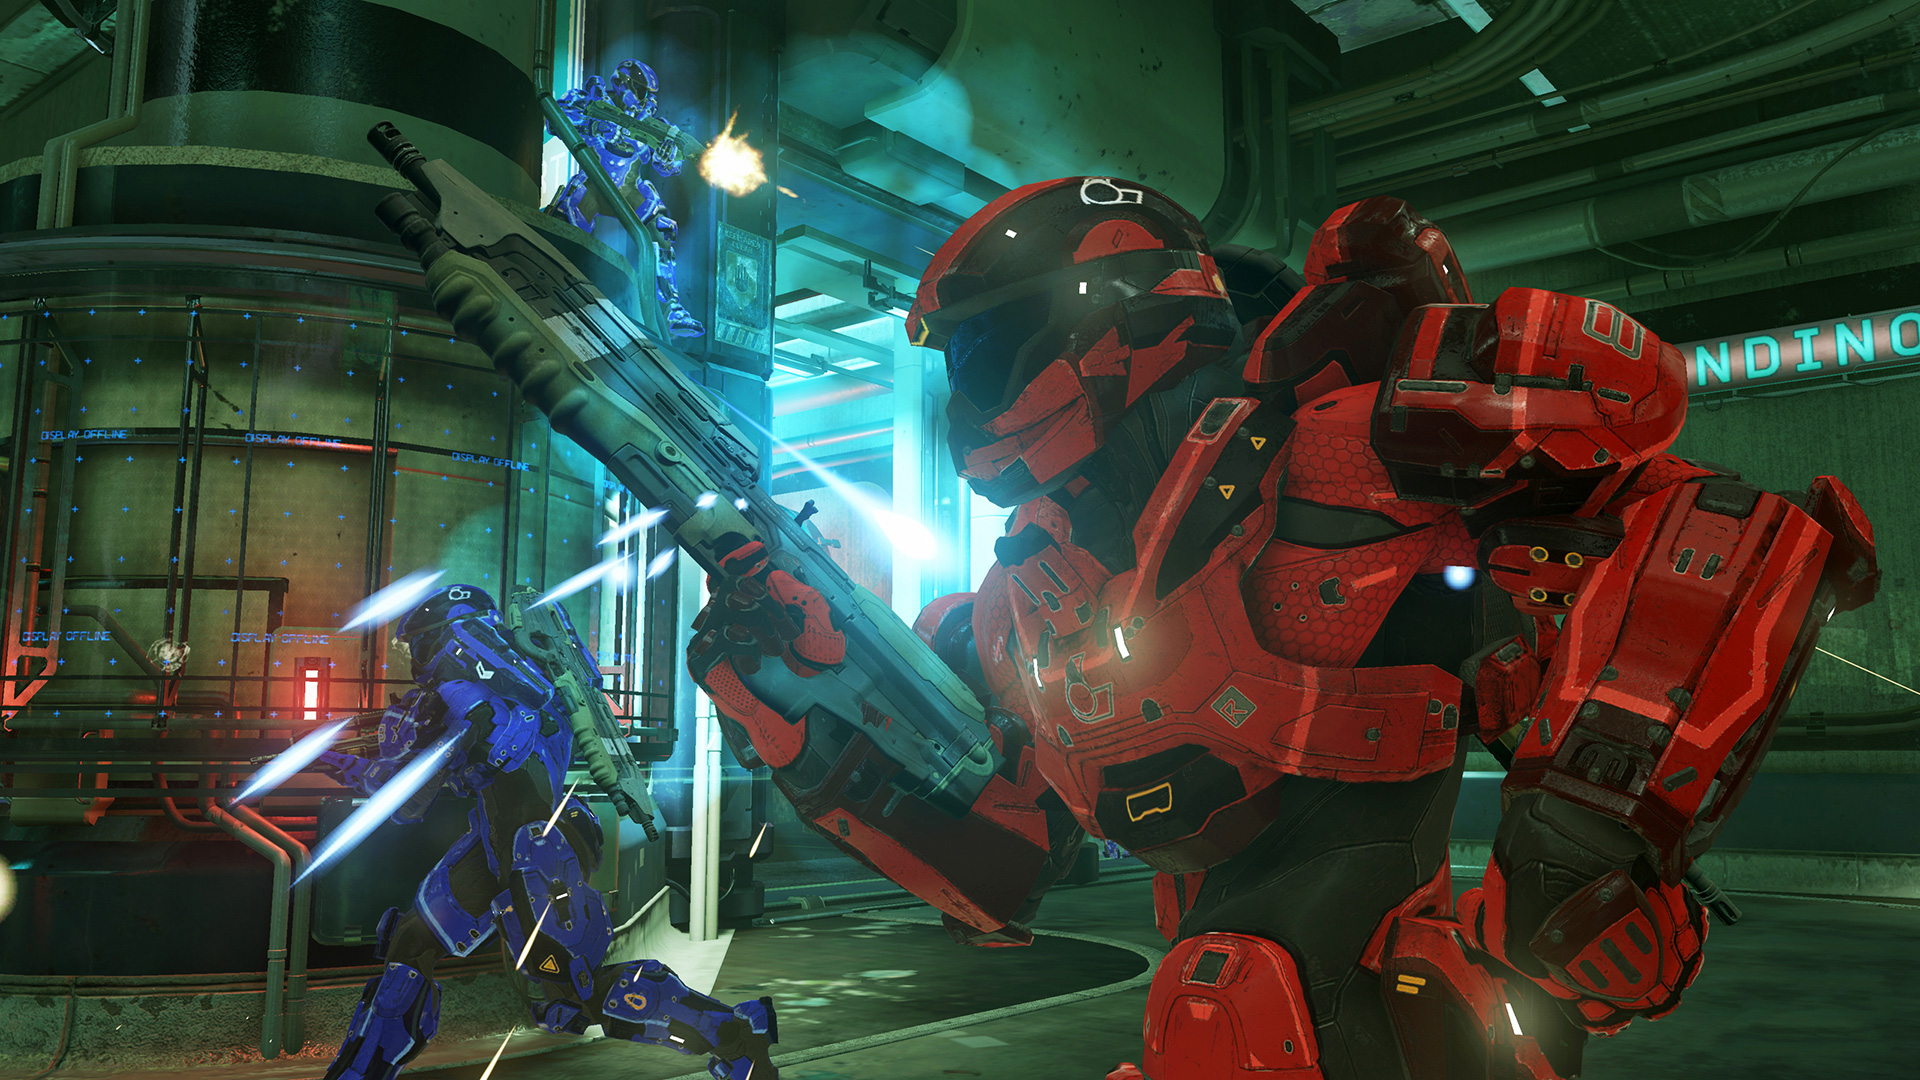 Halo 5: Guardians is the first main game in the series to avoid an M rating